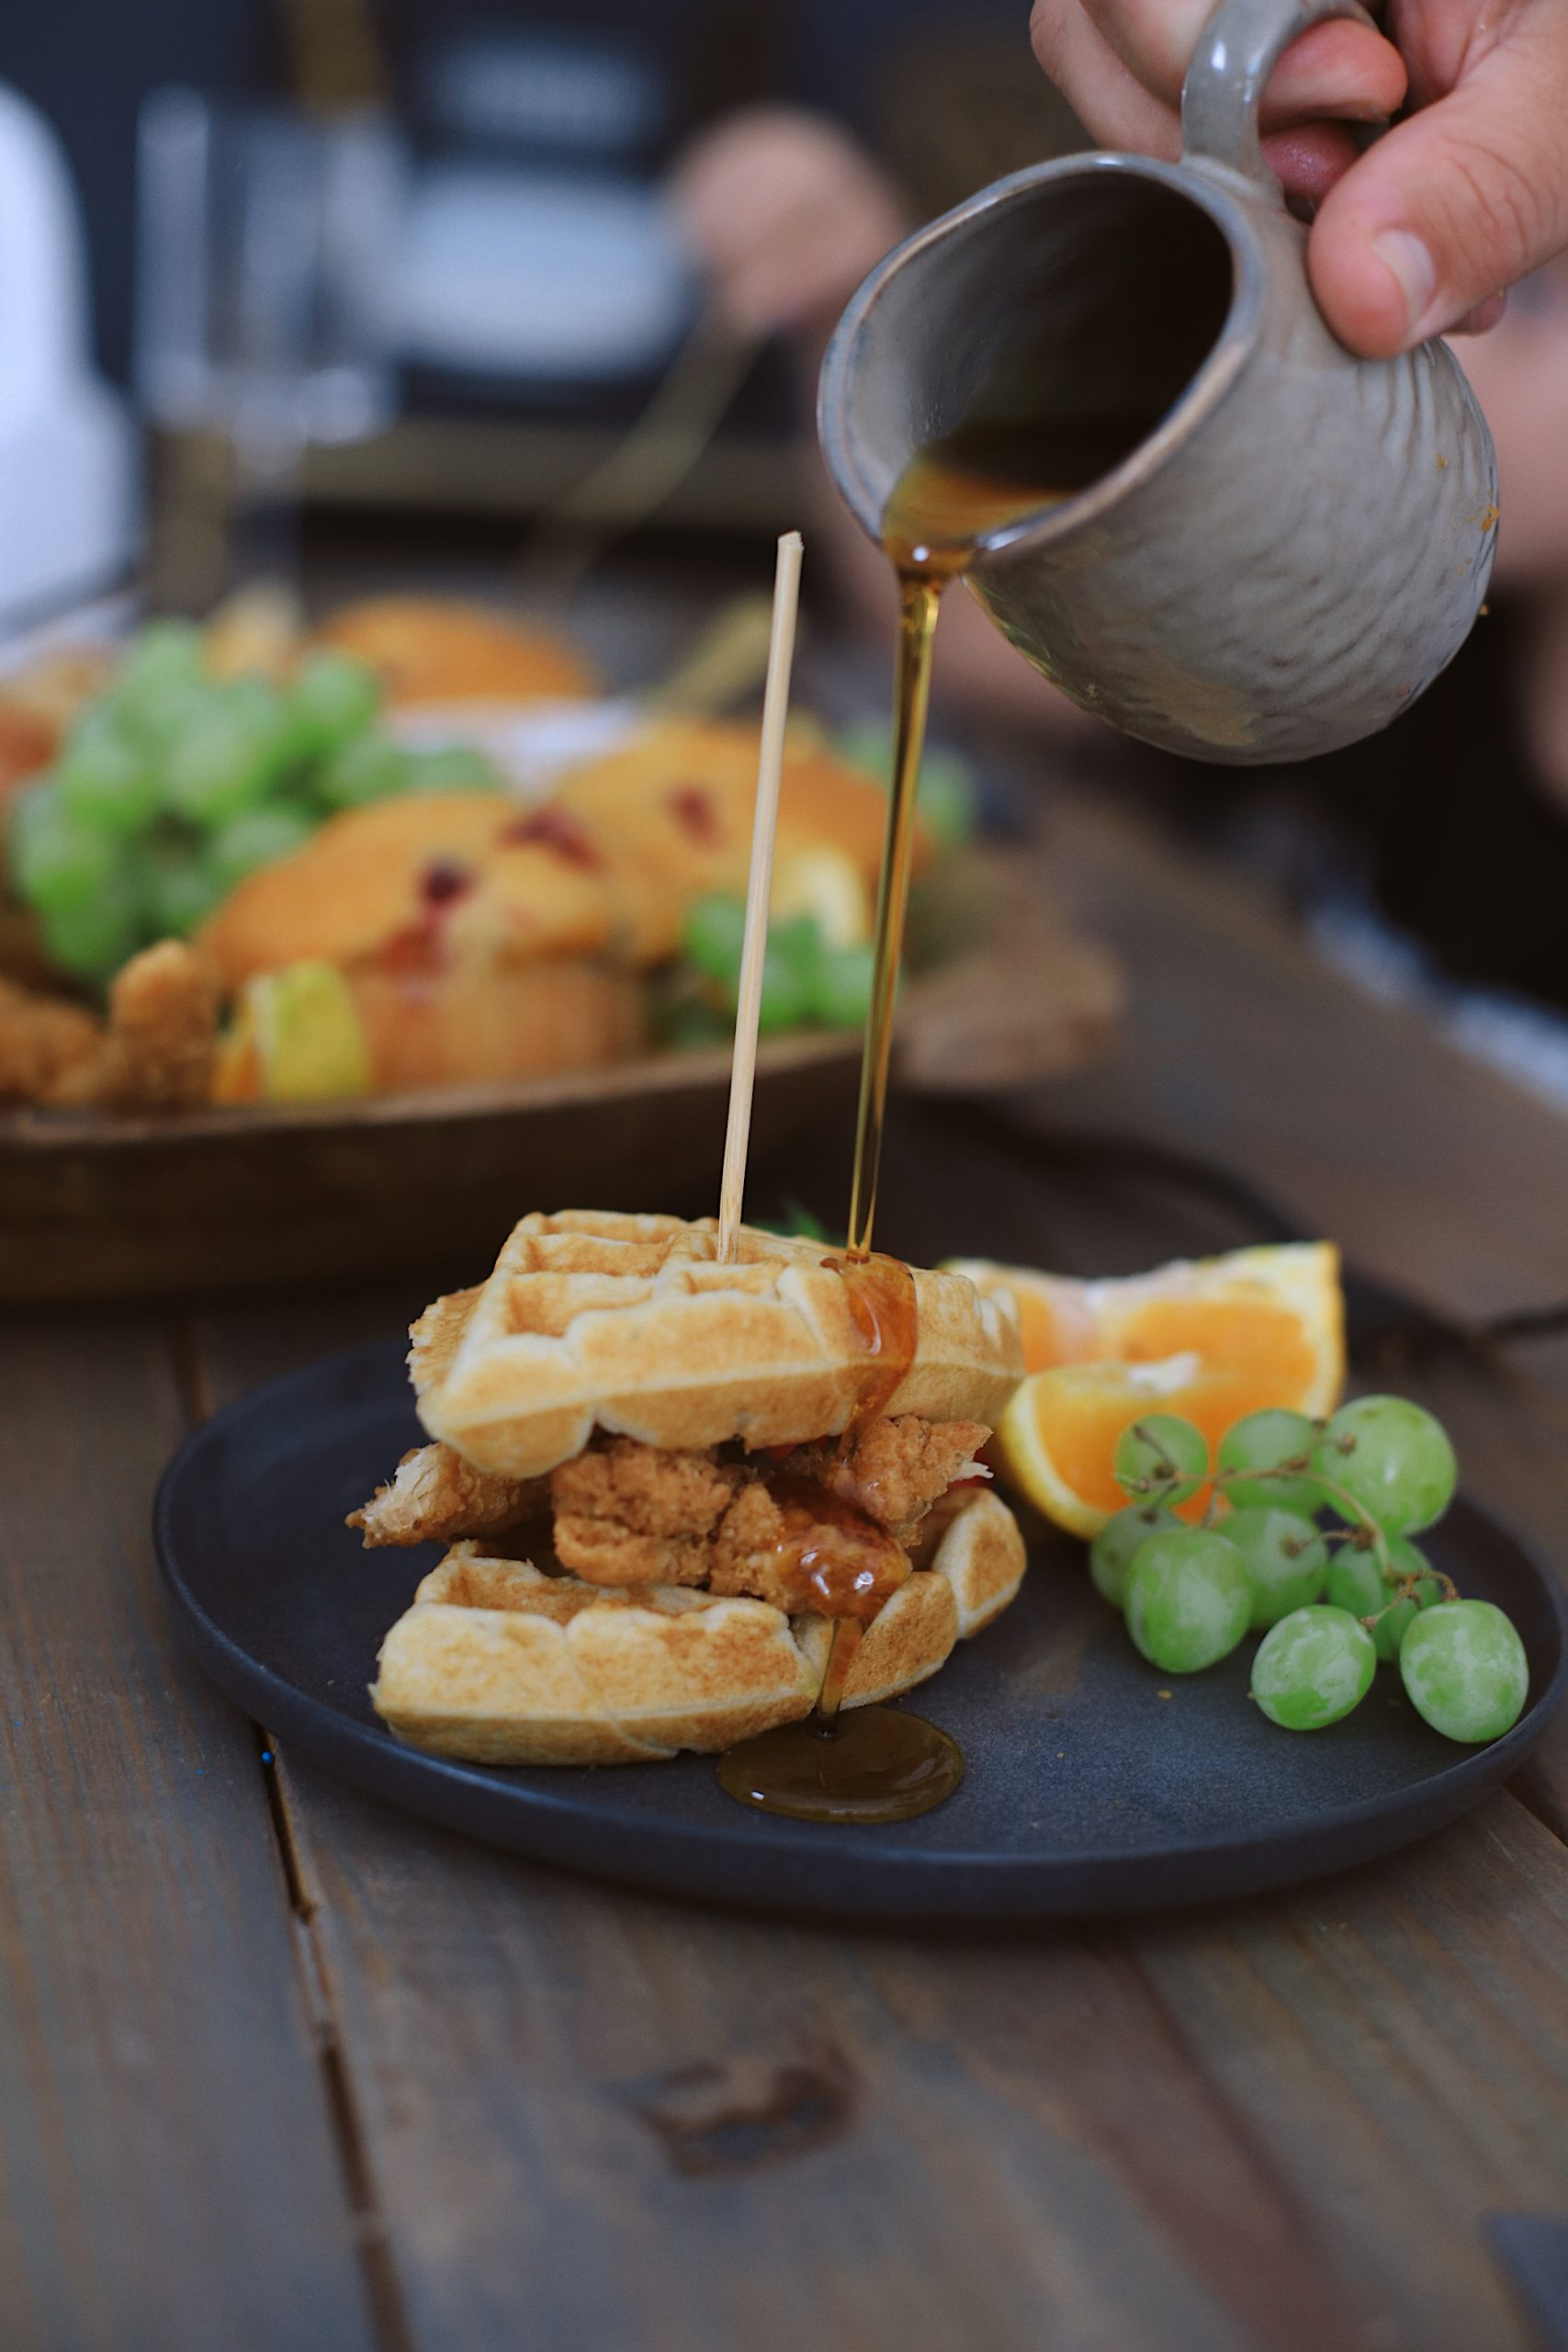 Easy Waffle Recipe for an Amazing Breakfast for Dinner Family Night - Chicken and Waffles Breakfast Board | Waffle Recipe by popular Florida lifestyle blog, Fresh Mommy Blog: image of a person pouring syrup on a chicken and waffle sandwich.